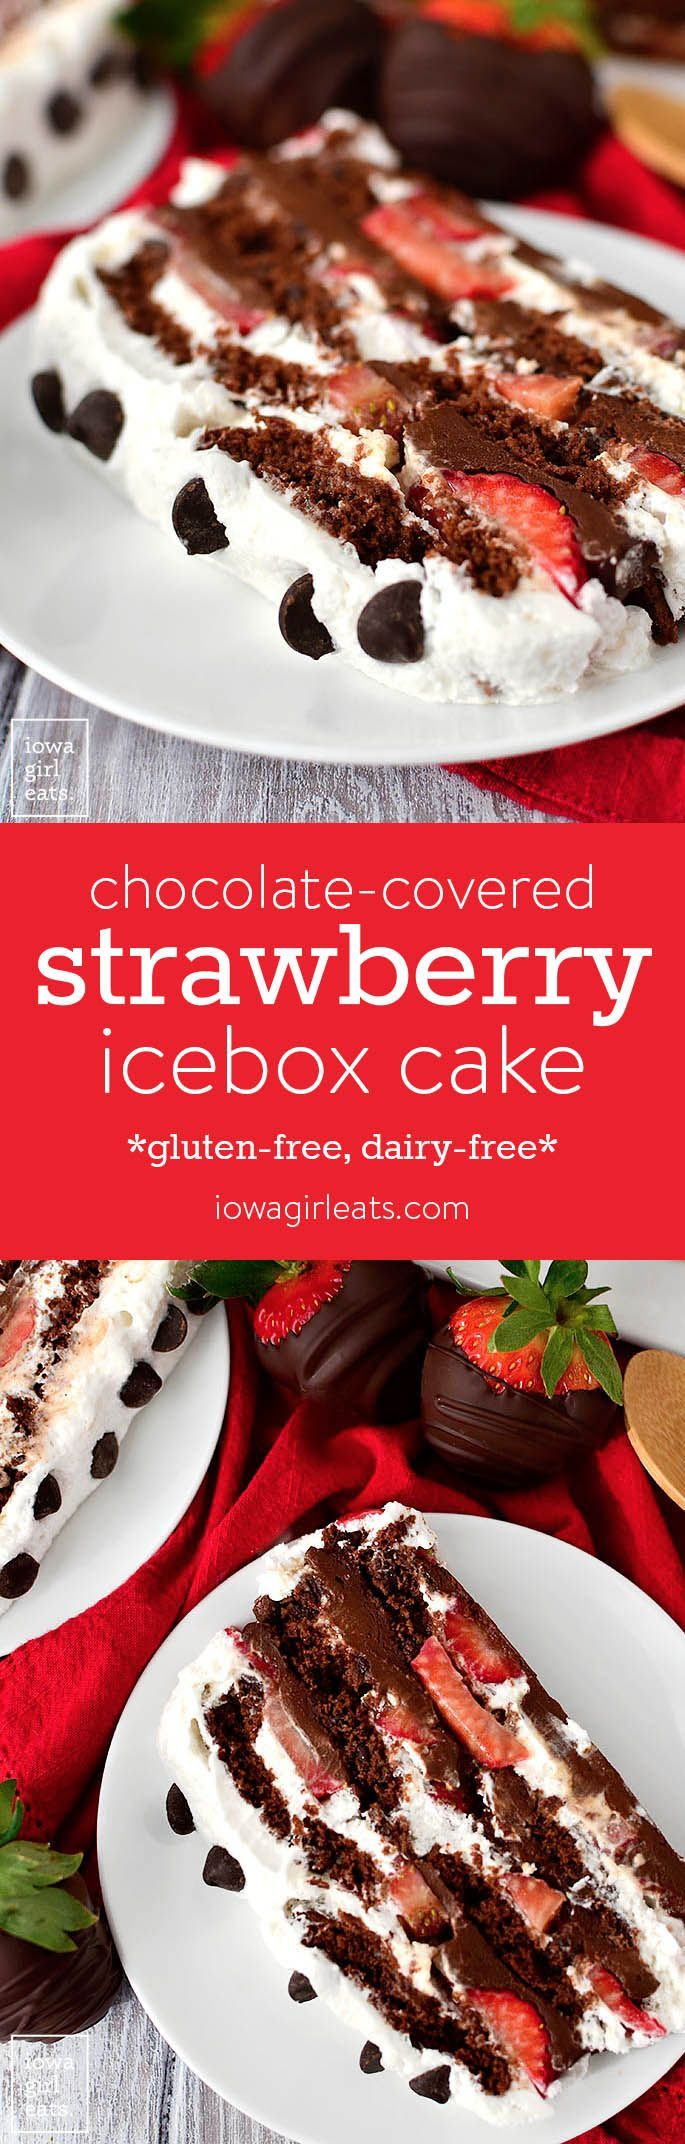 Chocolate-Covered Strawberry Icebox Cake is for serious chocolate lovers only!! This gluten-free, dairy-free dessert recipe is decadent, sweet, and packed with chocolate. | iowagirleats.com #glutenfree